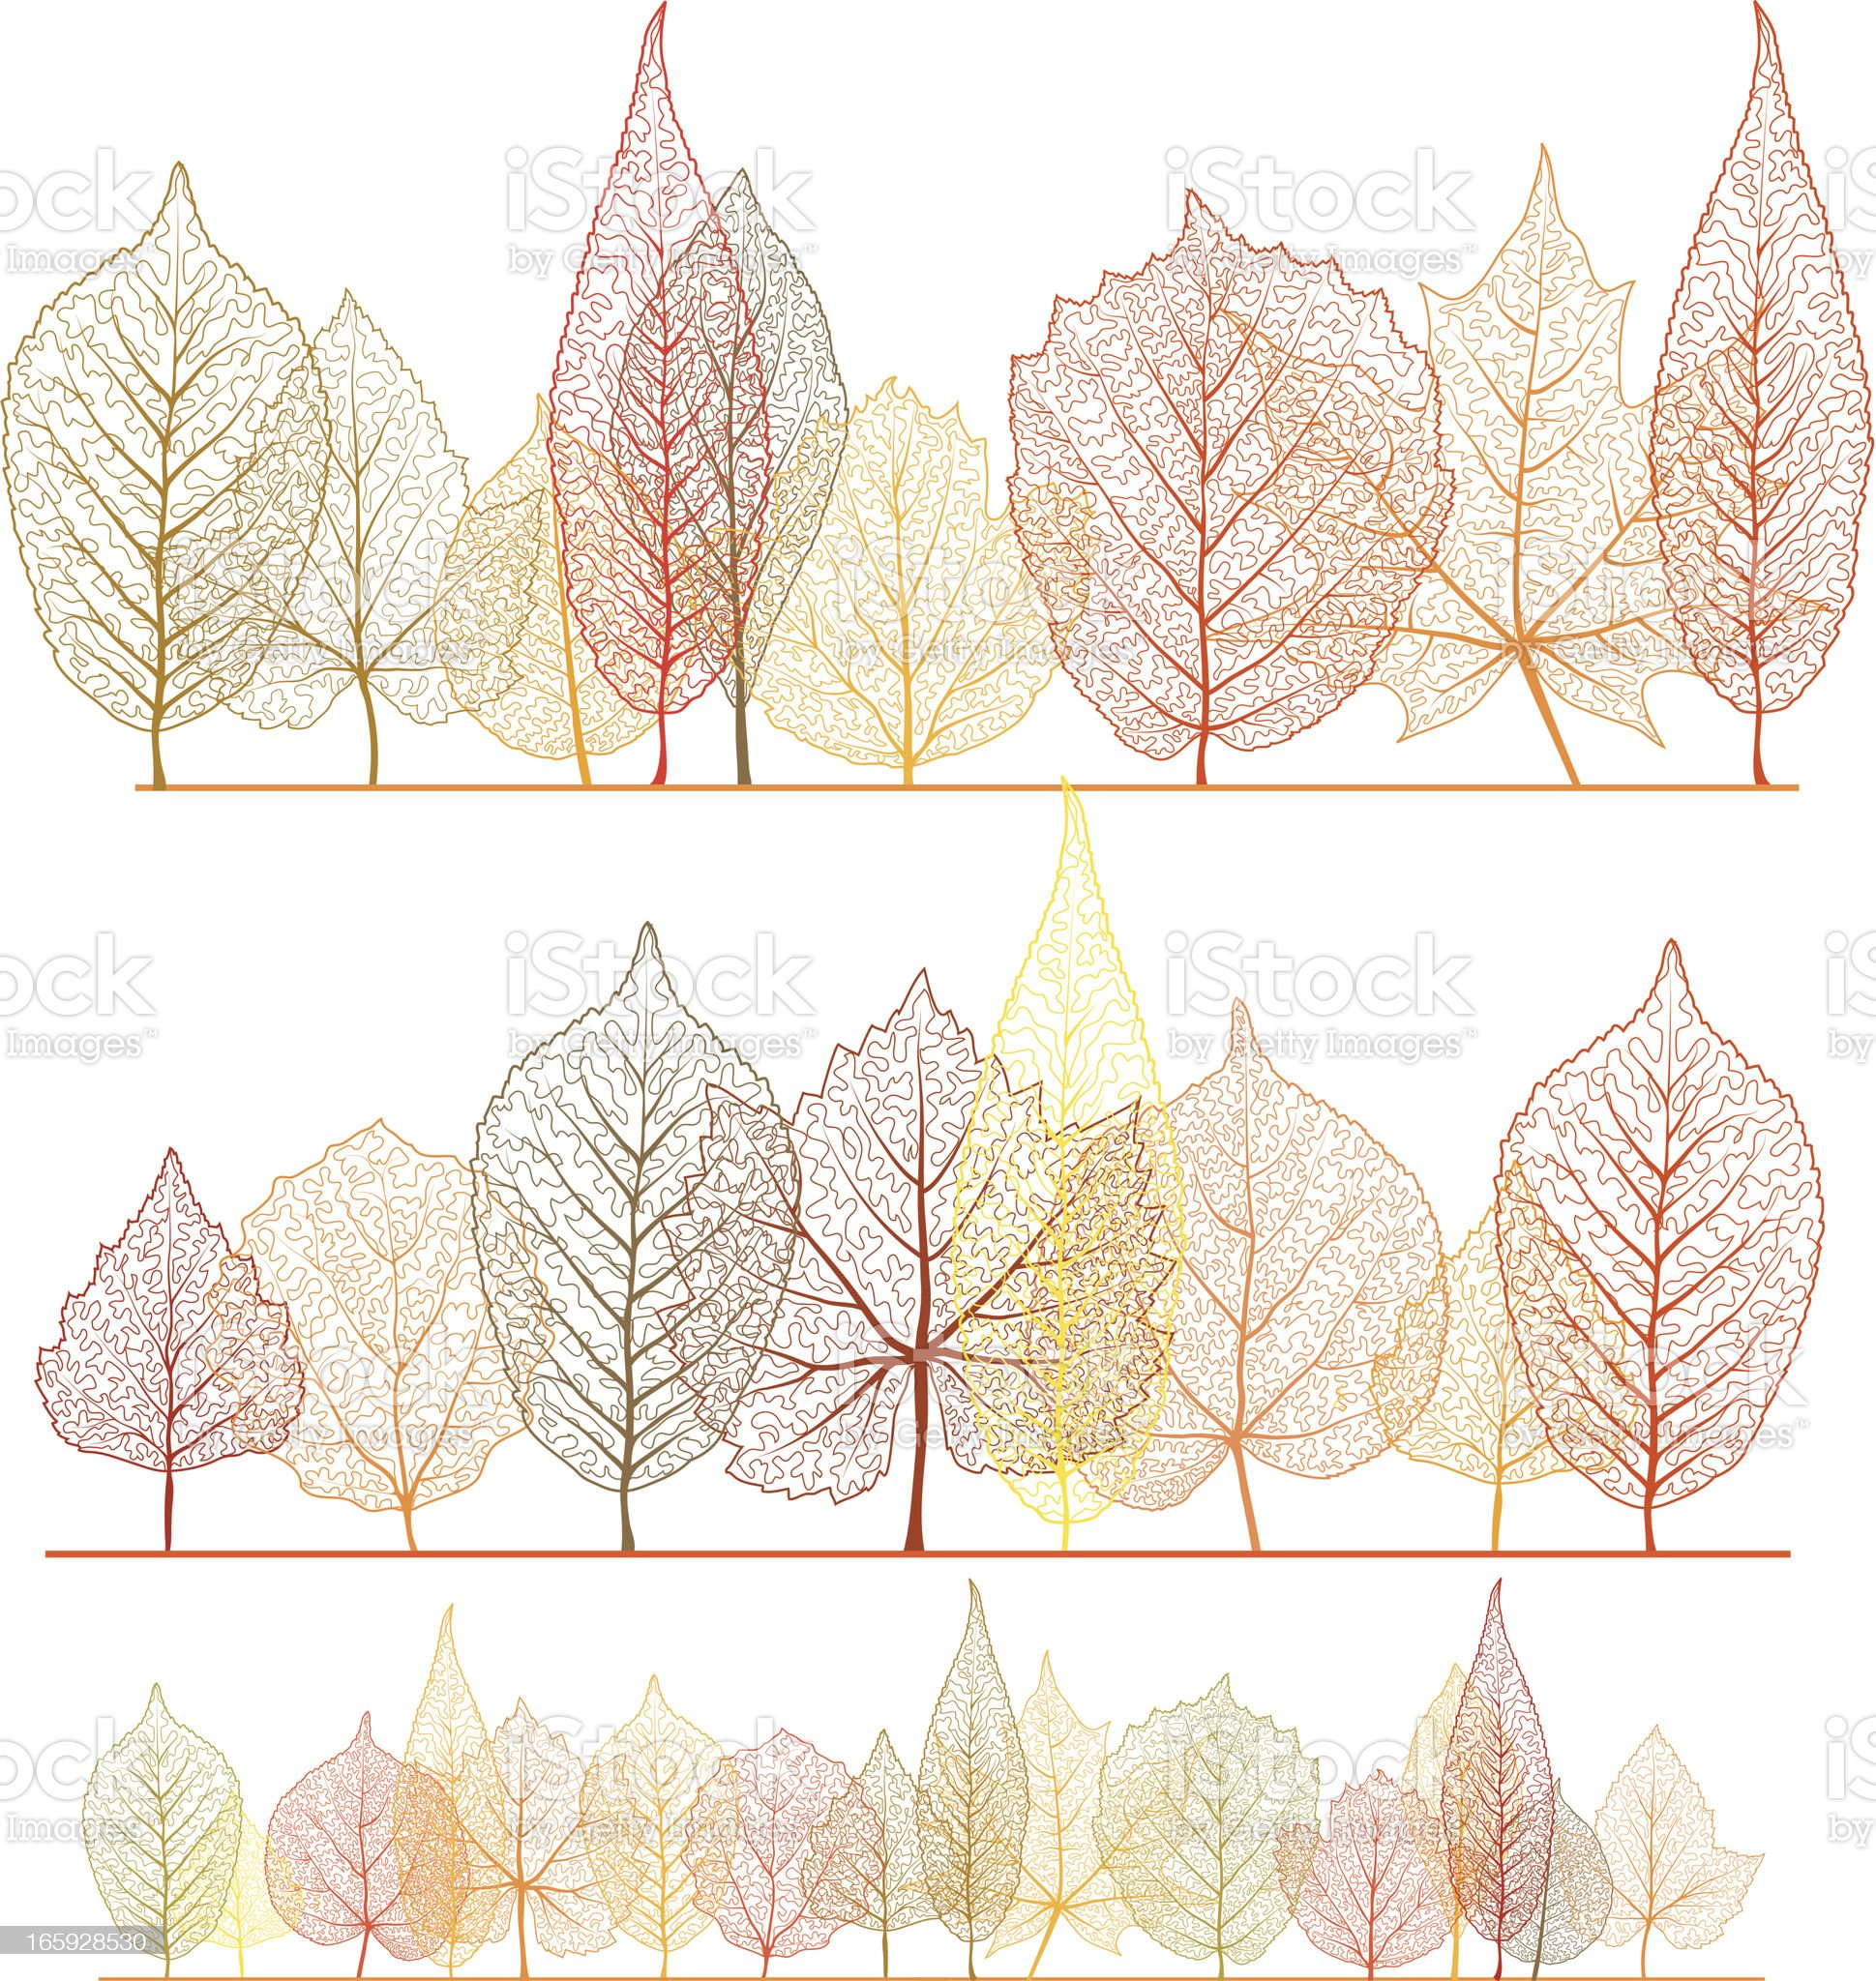 Autumn forest royalty-free stock vector art